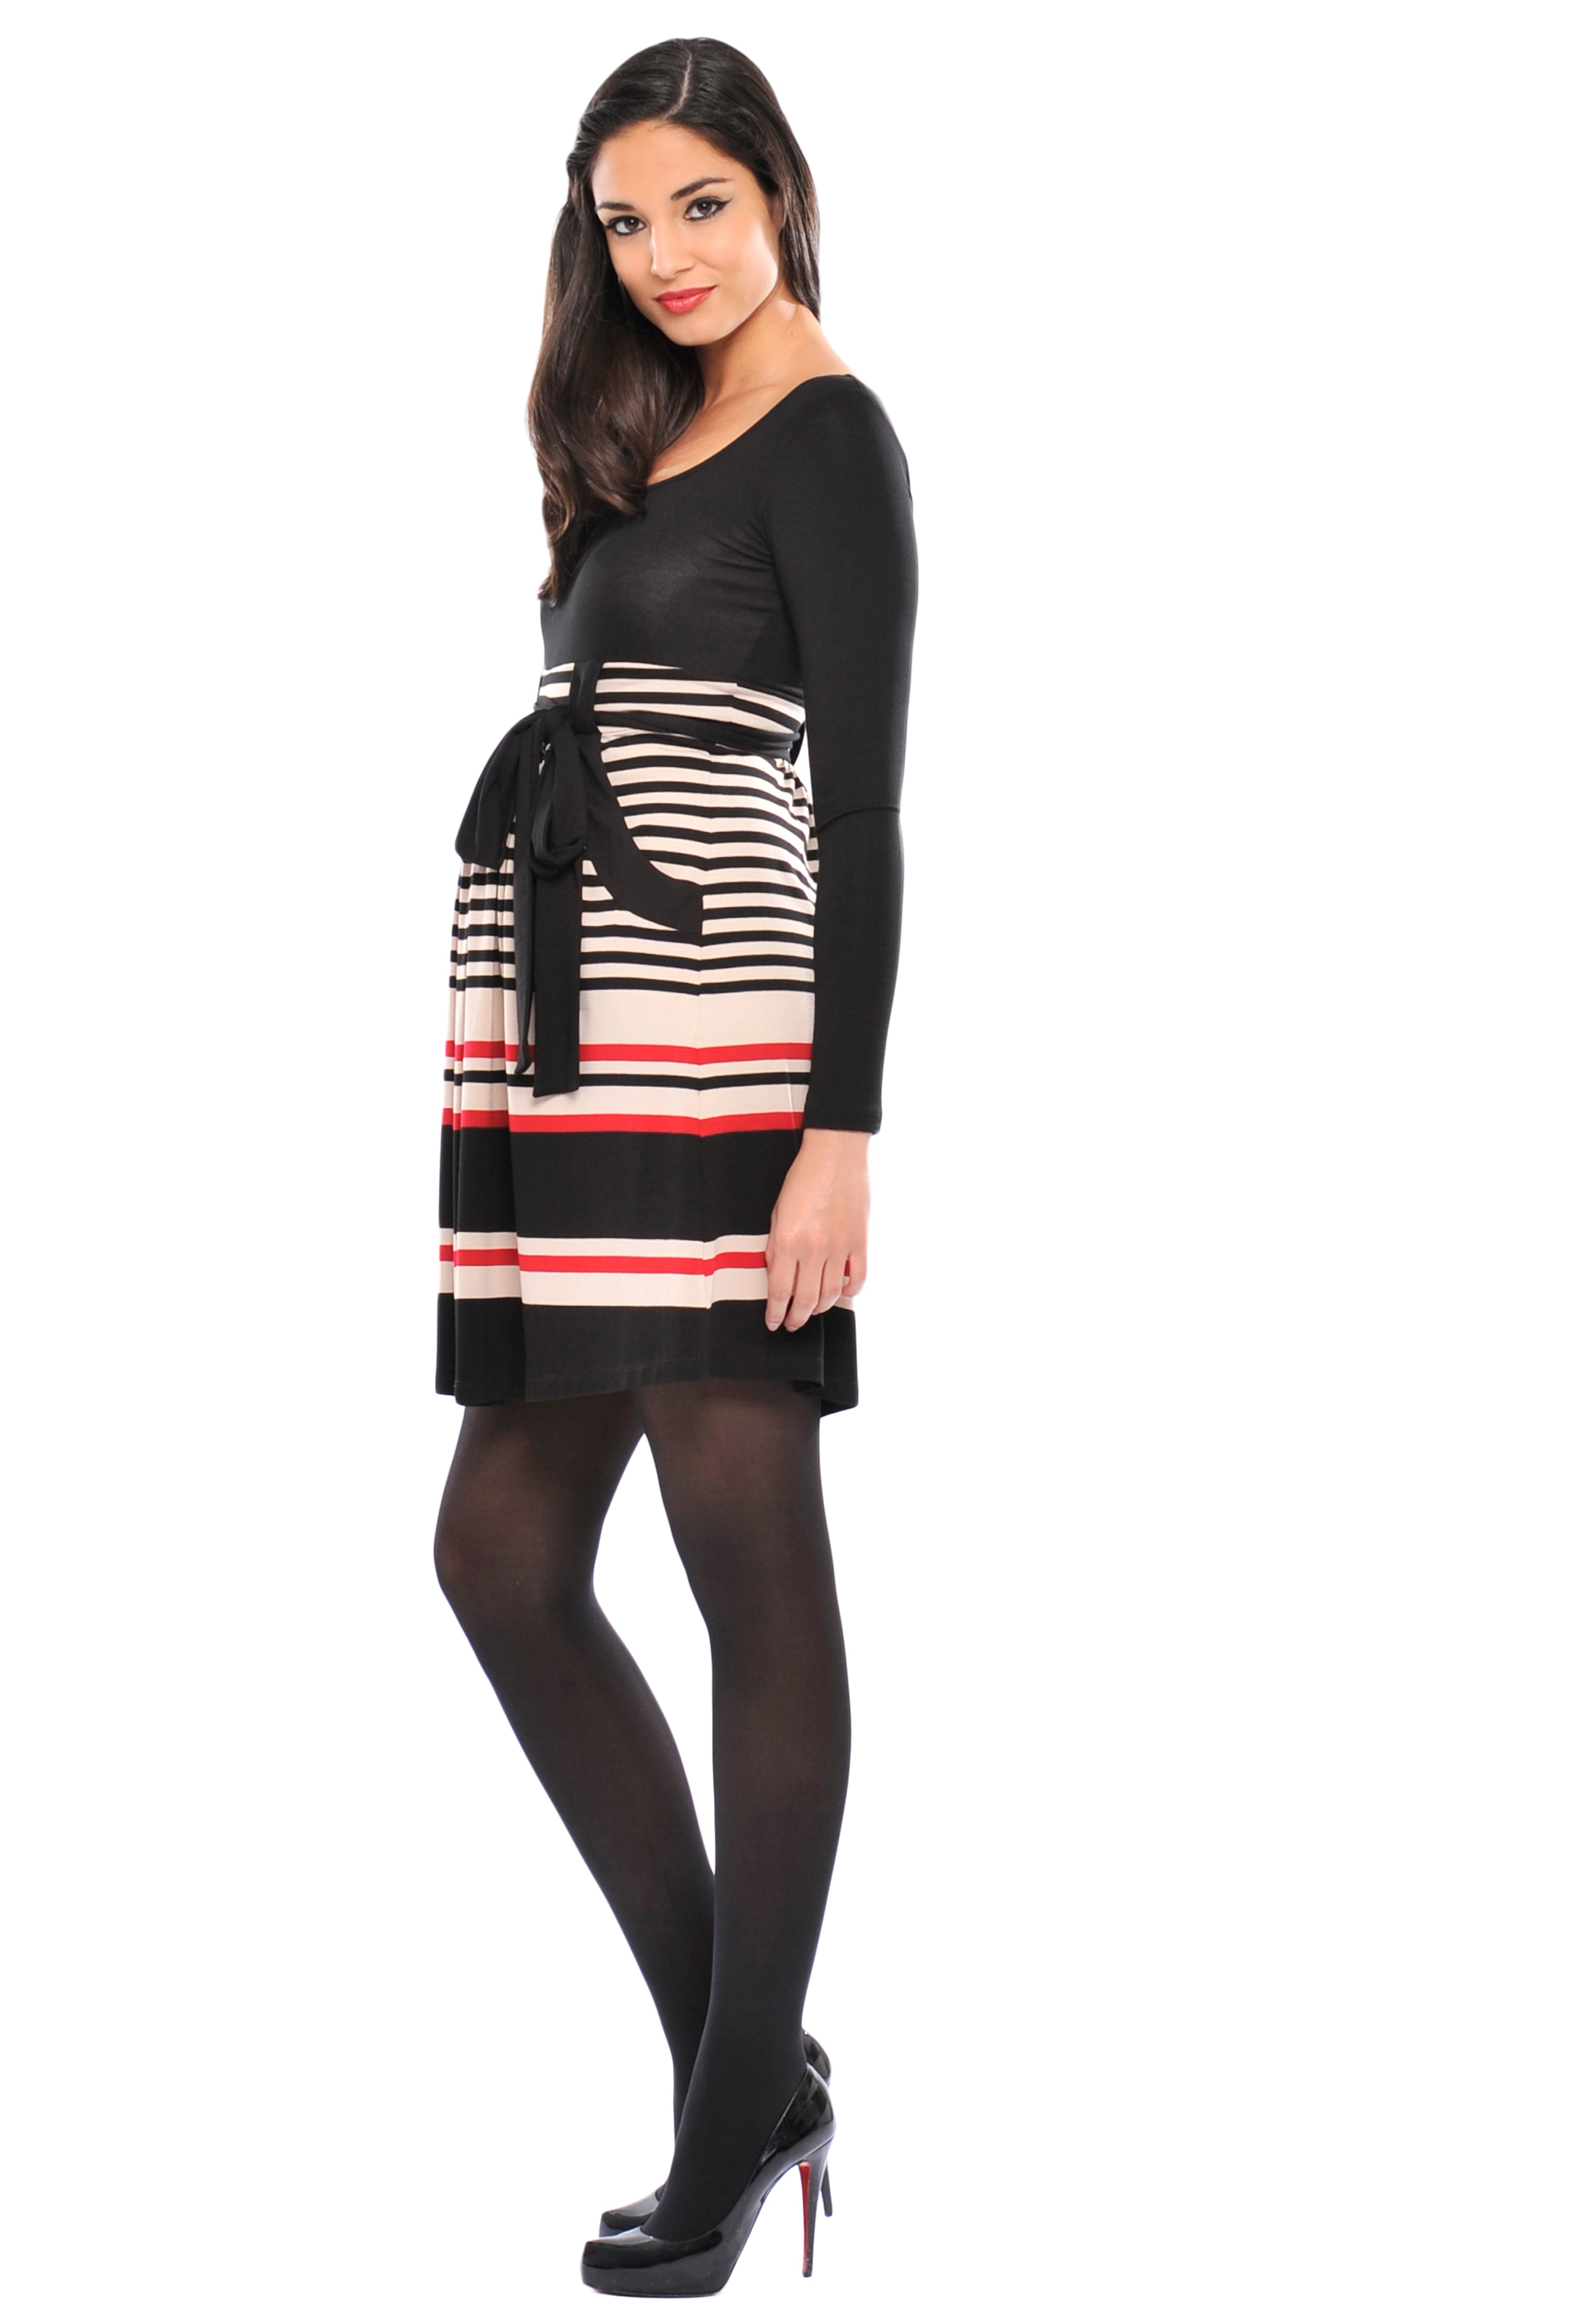 Z Michelle Striped Baby Doll Dress